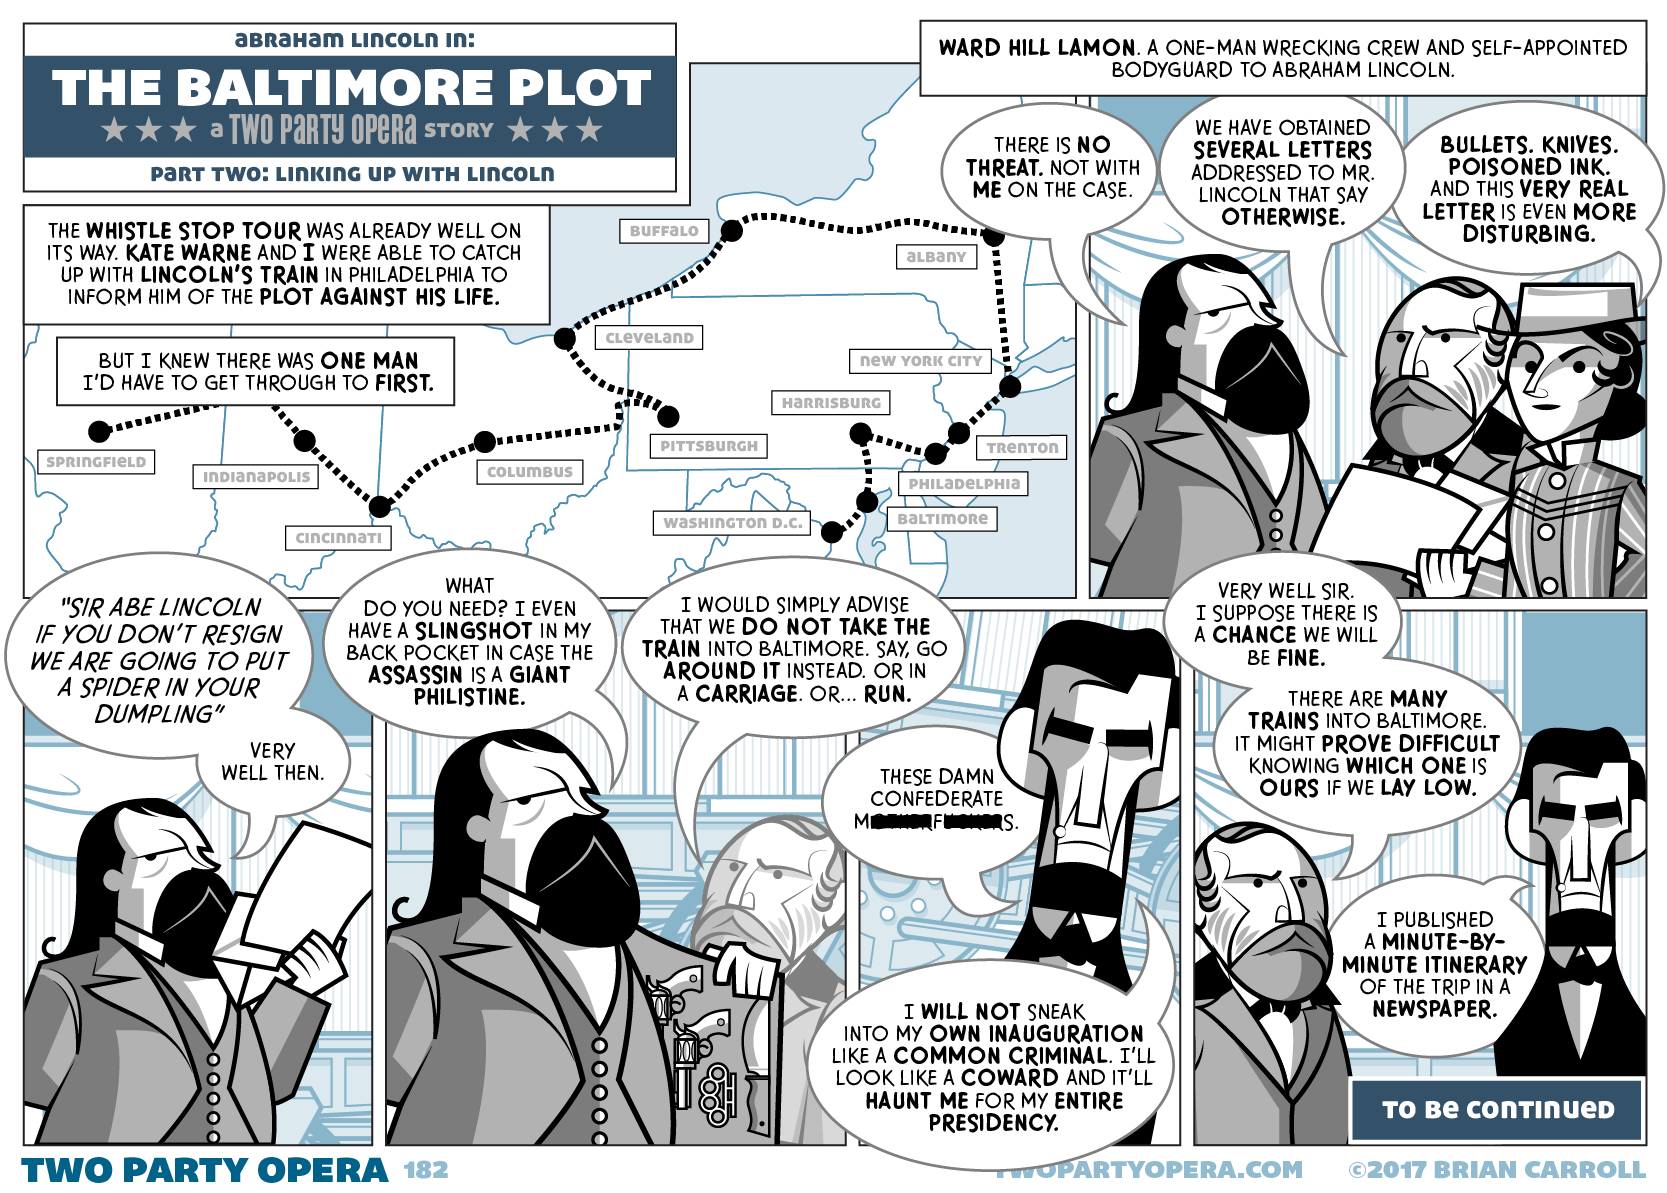 The Baltimore Plot – Part Two: Linking Up With Lincoln